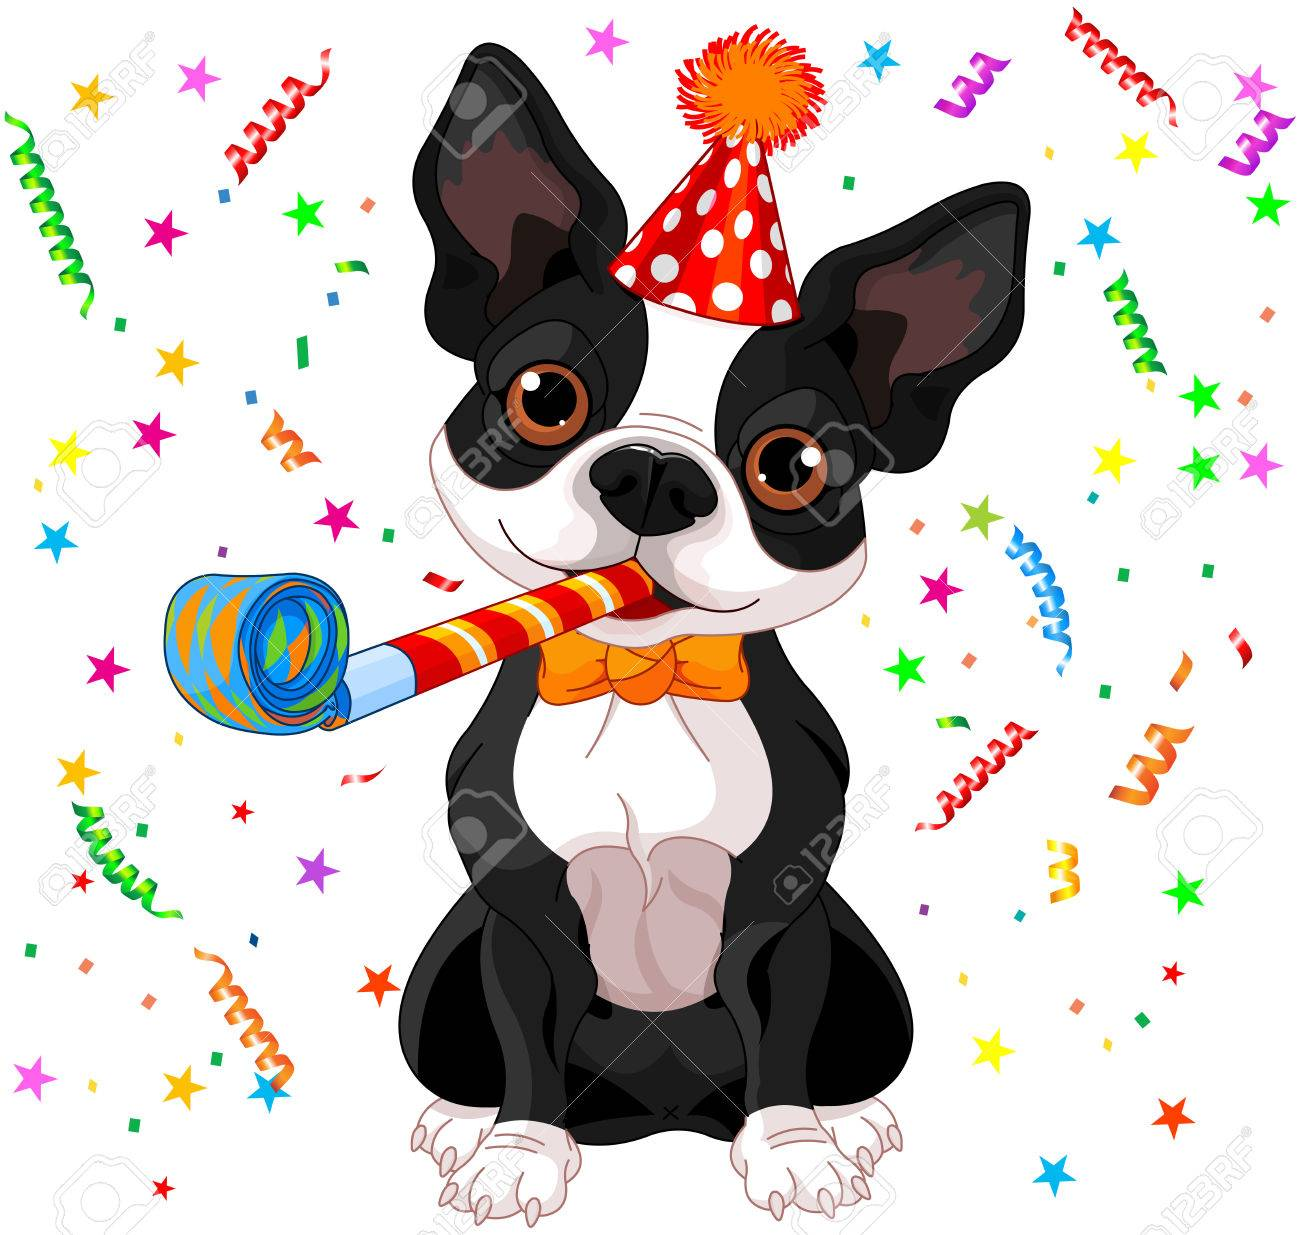 Le sac banane: pour avoir les mains libres 35588778-illustration-of-cute-boston-terrier-celebrating